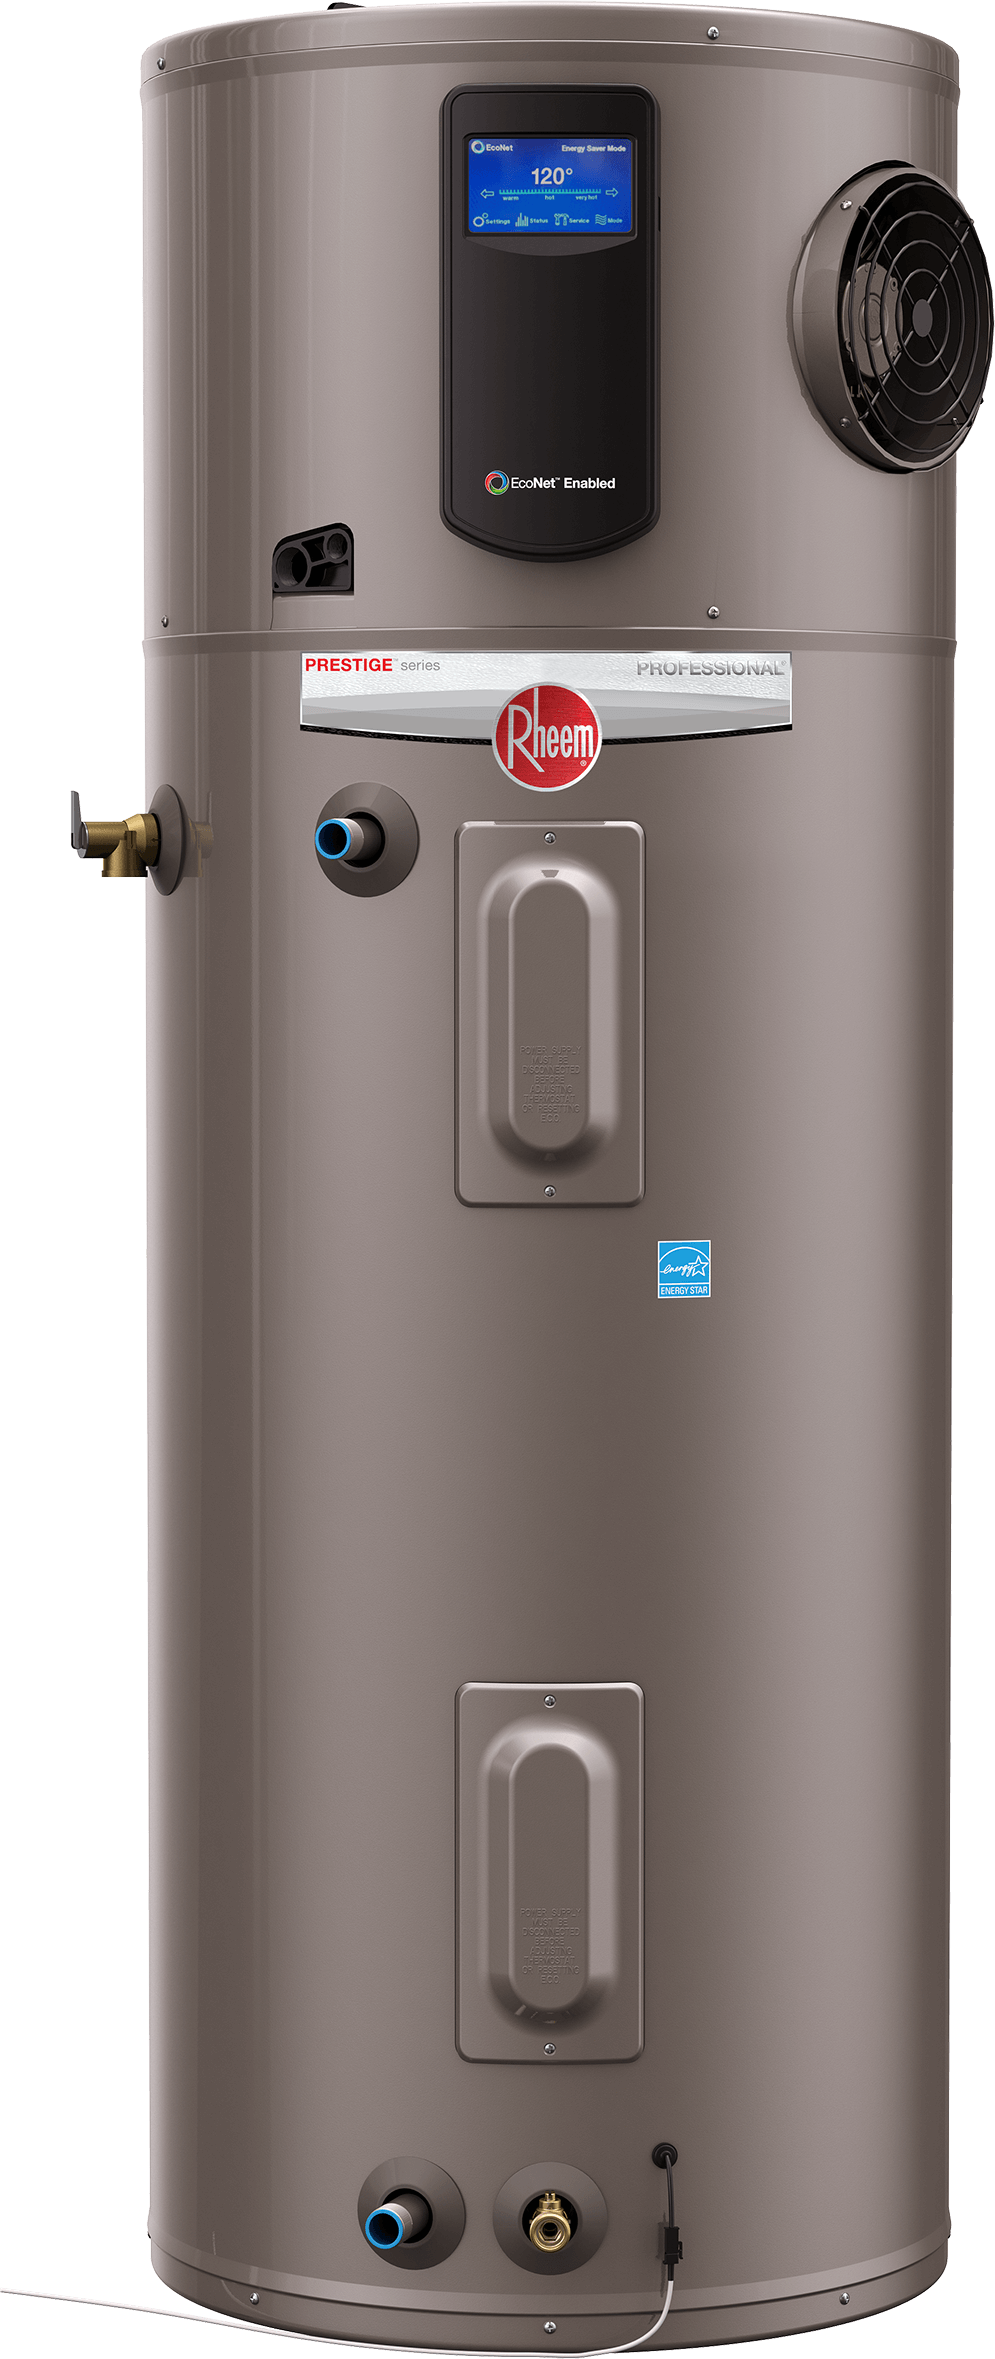 Rheem's Hybrid Electric Water Heater Is the Most Efficient ... on mobile home fittings, mobile home services, mobile home gas, mobile home water lines, mobile home water connections, mobile home oil heaters, mobile home heat pumps, mobile home water hoses, mobile home water tanks, mobile home air handlers, mobile home exterior products, mobile home tools, mobile home central air systems, mobile home sewer lines, mobile home water softeners, mobile home central air conditioning units, mobile home ac systems, mobile home mirrors, mobile home ac installation, mobile home electrical,